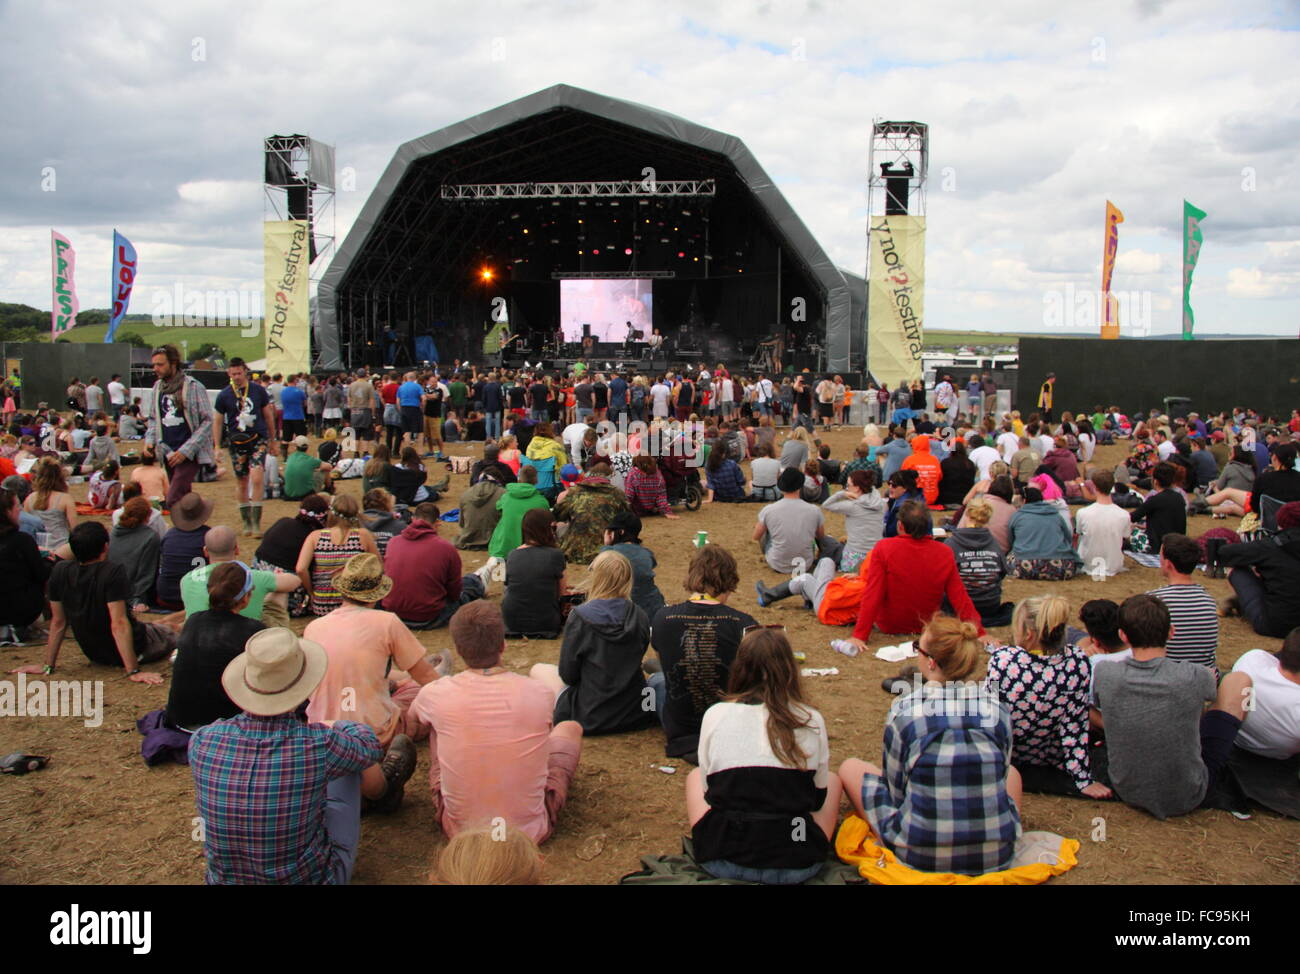 FEstival goers gather around the main stage at the Y Not music festival, Derbyshire England UK - Stock Image